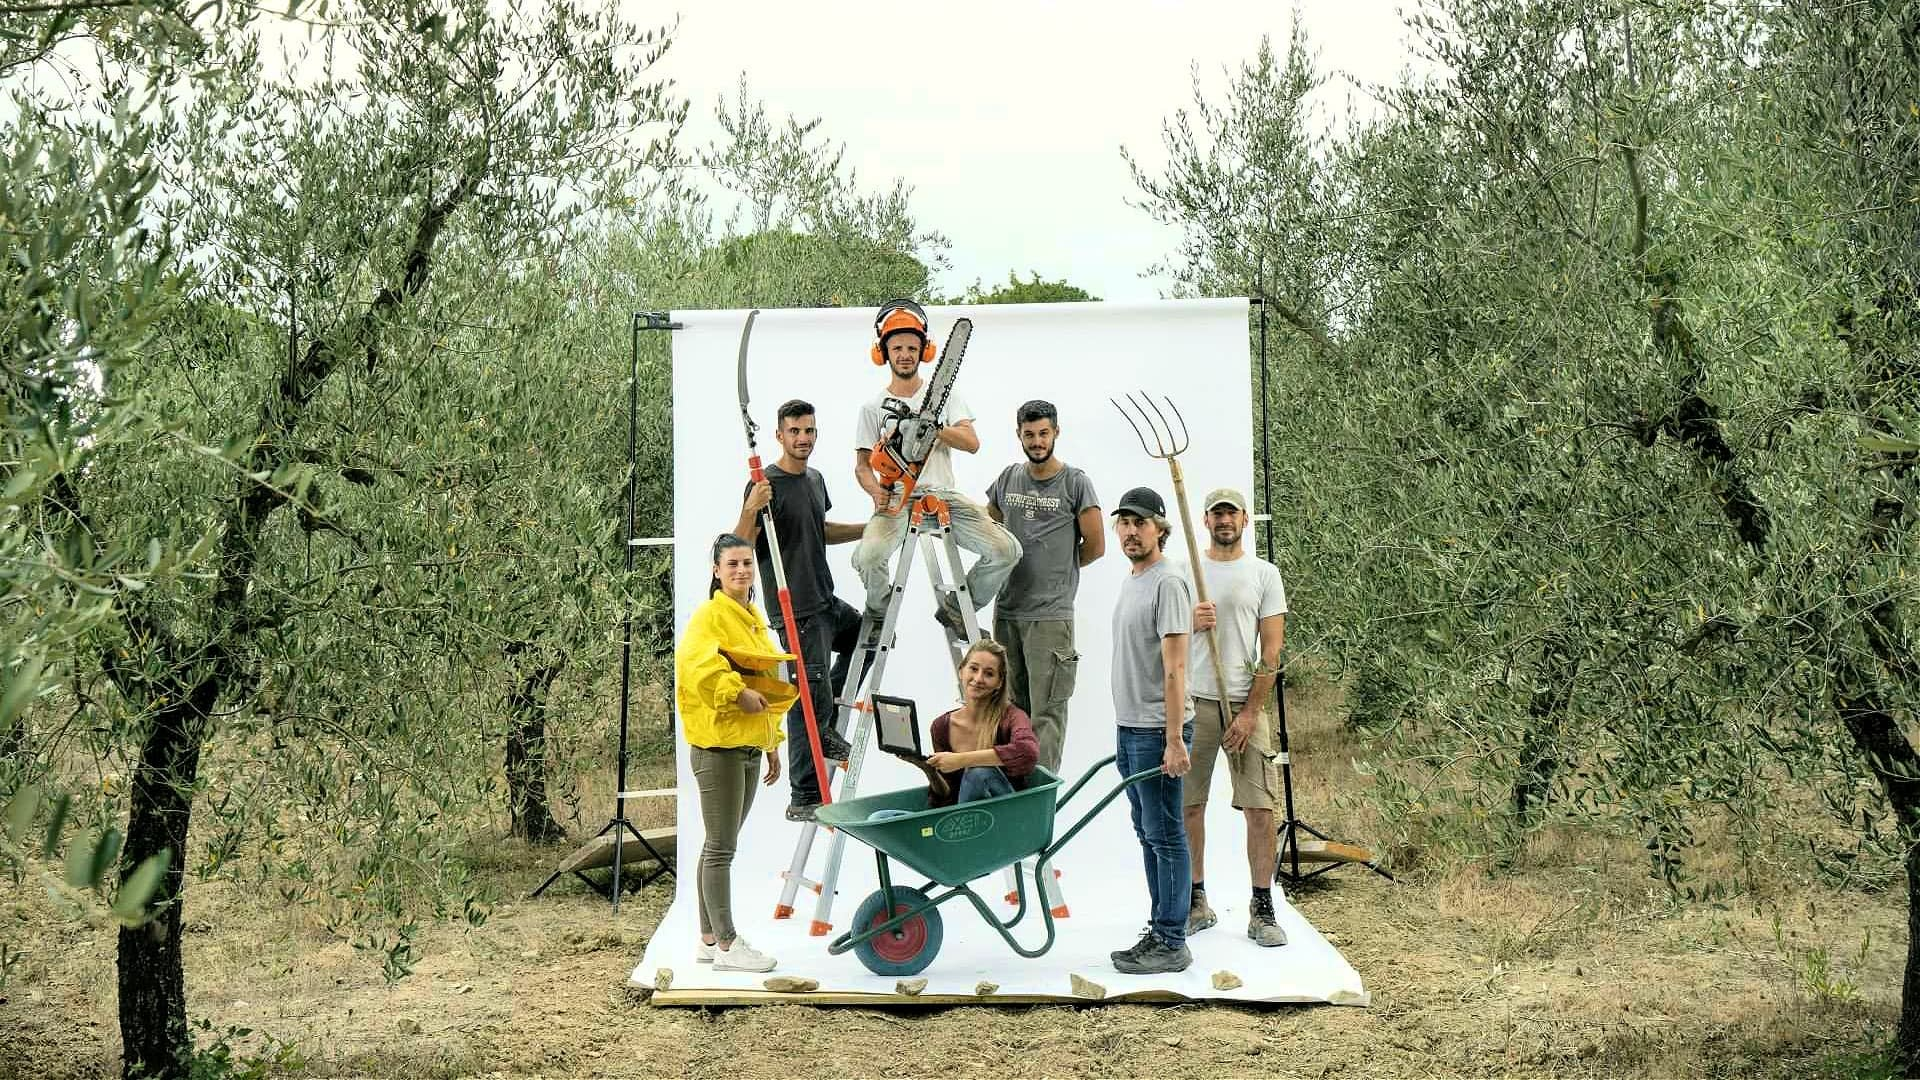 europe-competitions-profiles-the-best-olive-oils-a-higher-calling-for-awardwinning-producers-in-italy-olive-oil-times